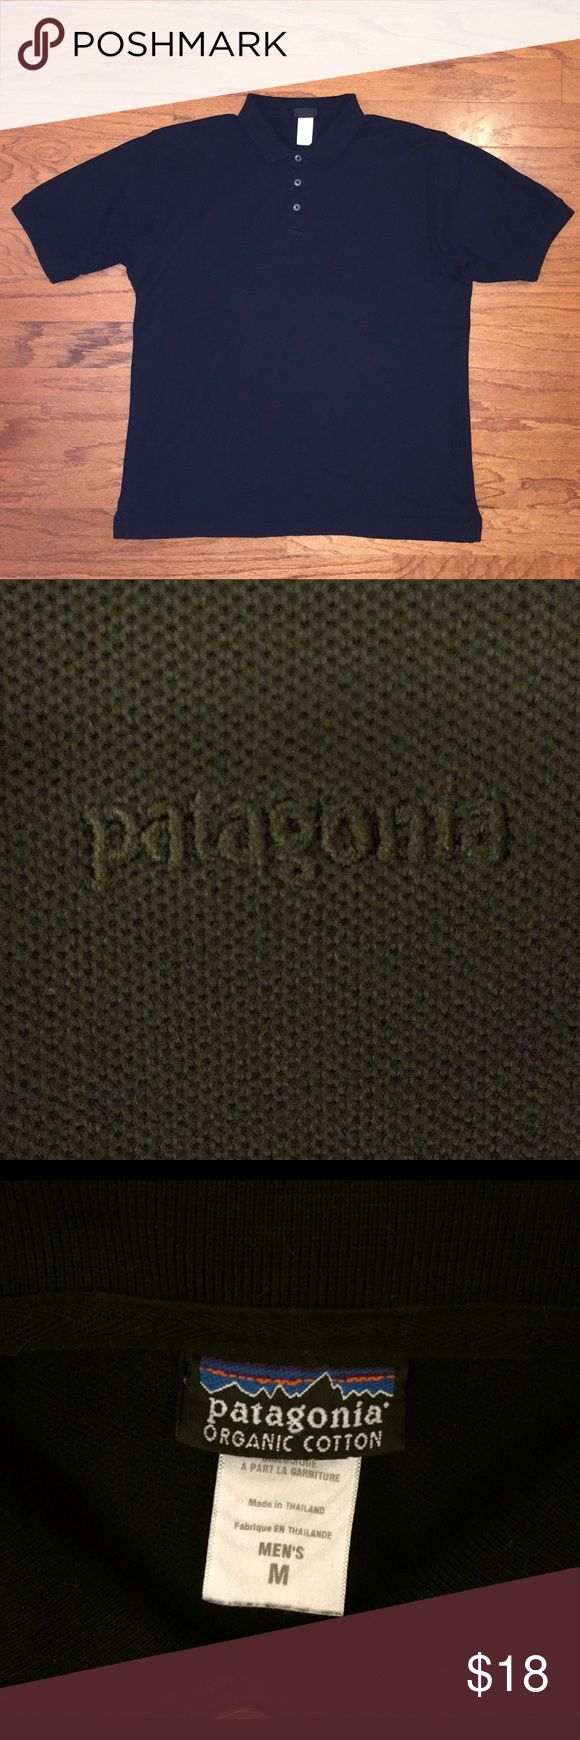 Patagonia, Black, Pique Polo, Organic Cotton Very good condition, gently worn, medium, black pique, made of organic cotton...excellent quality. Bundle for discount! Patagonia Shirts Polos